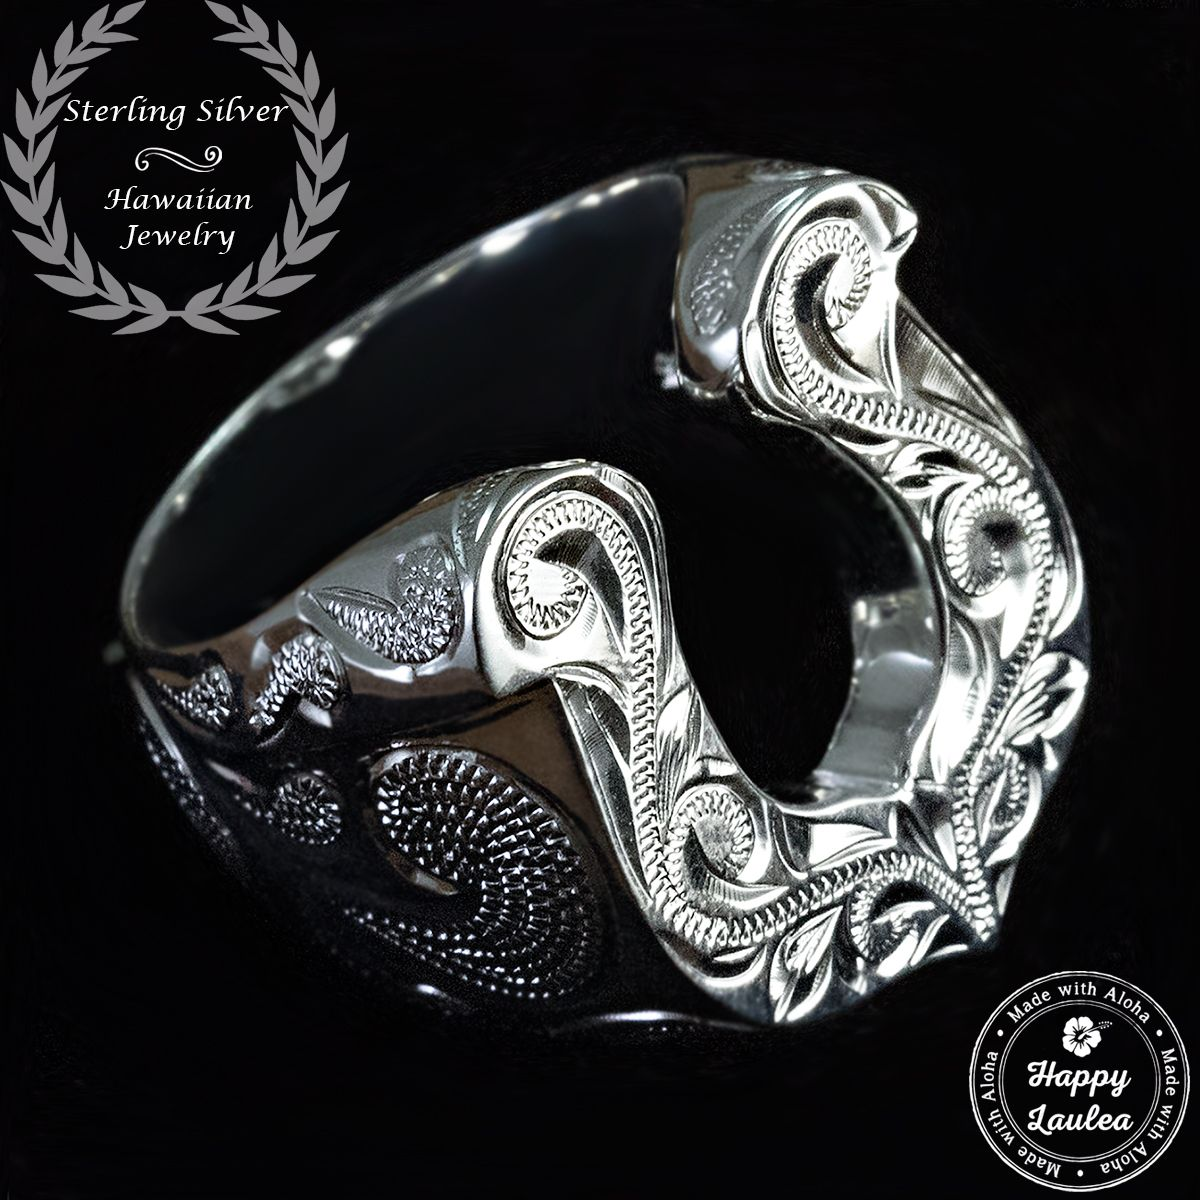 custom made sterling silver horse shoe ring hand engraved hawaiian heritage design - Horseshoe Wedding Rings